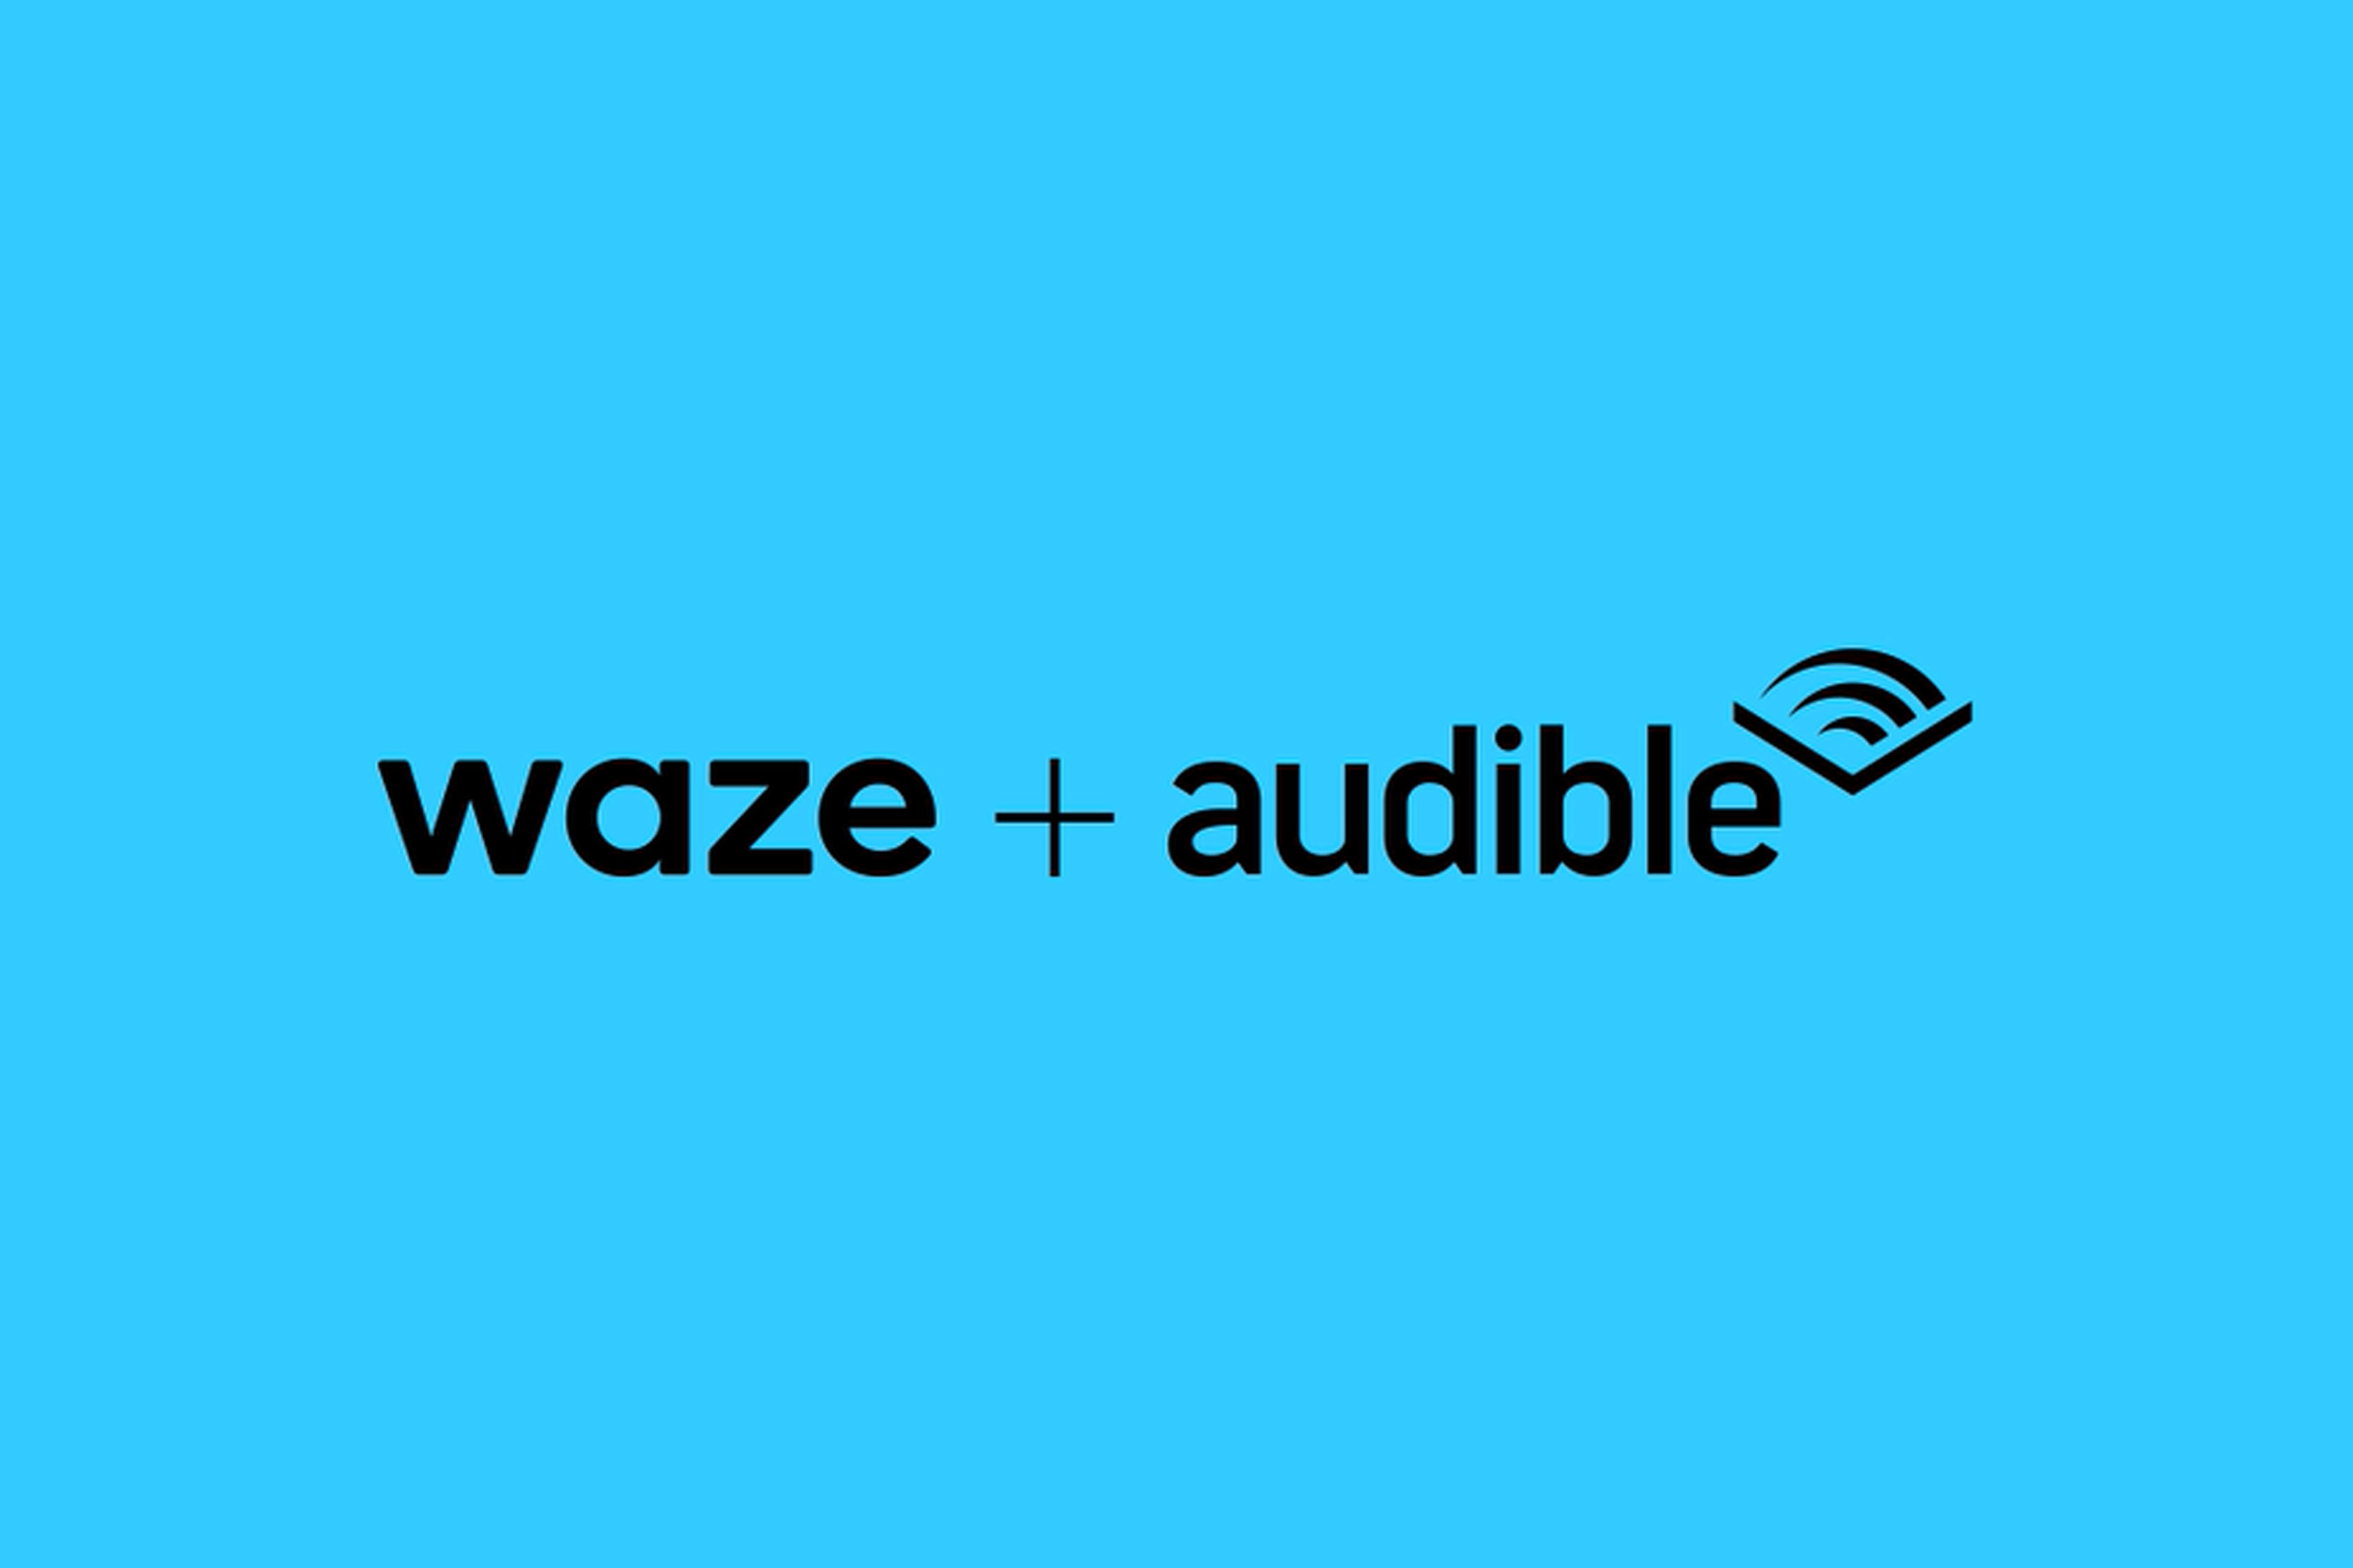 An image showing the black Waze and Audible logos set against a bright blue background